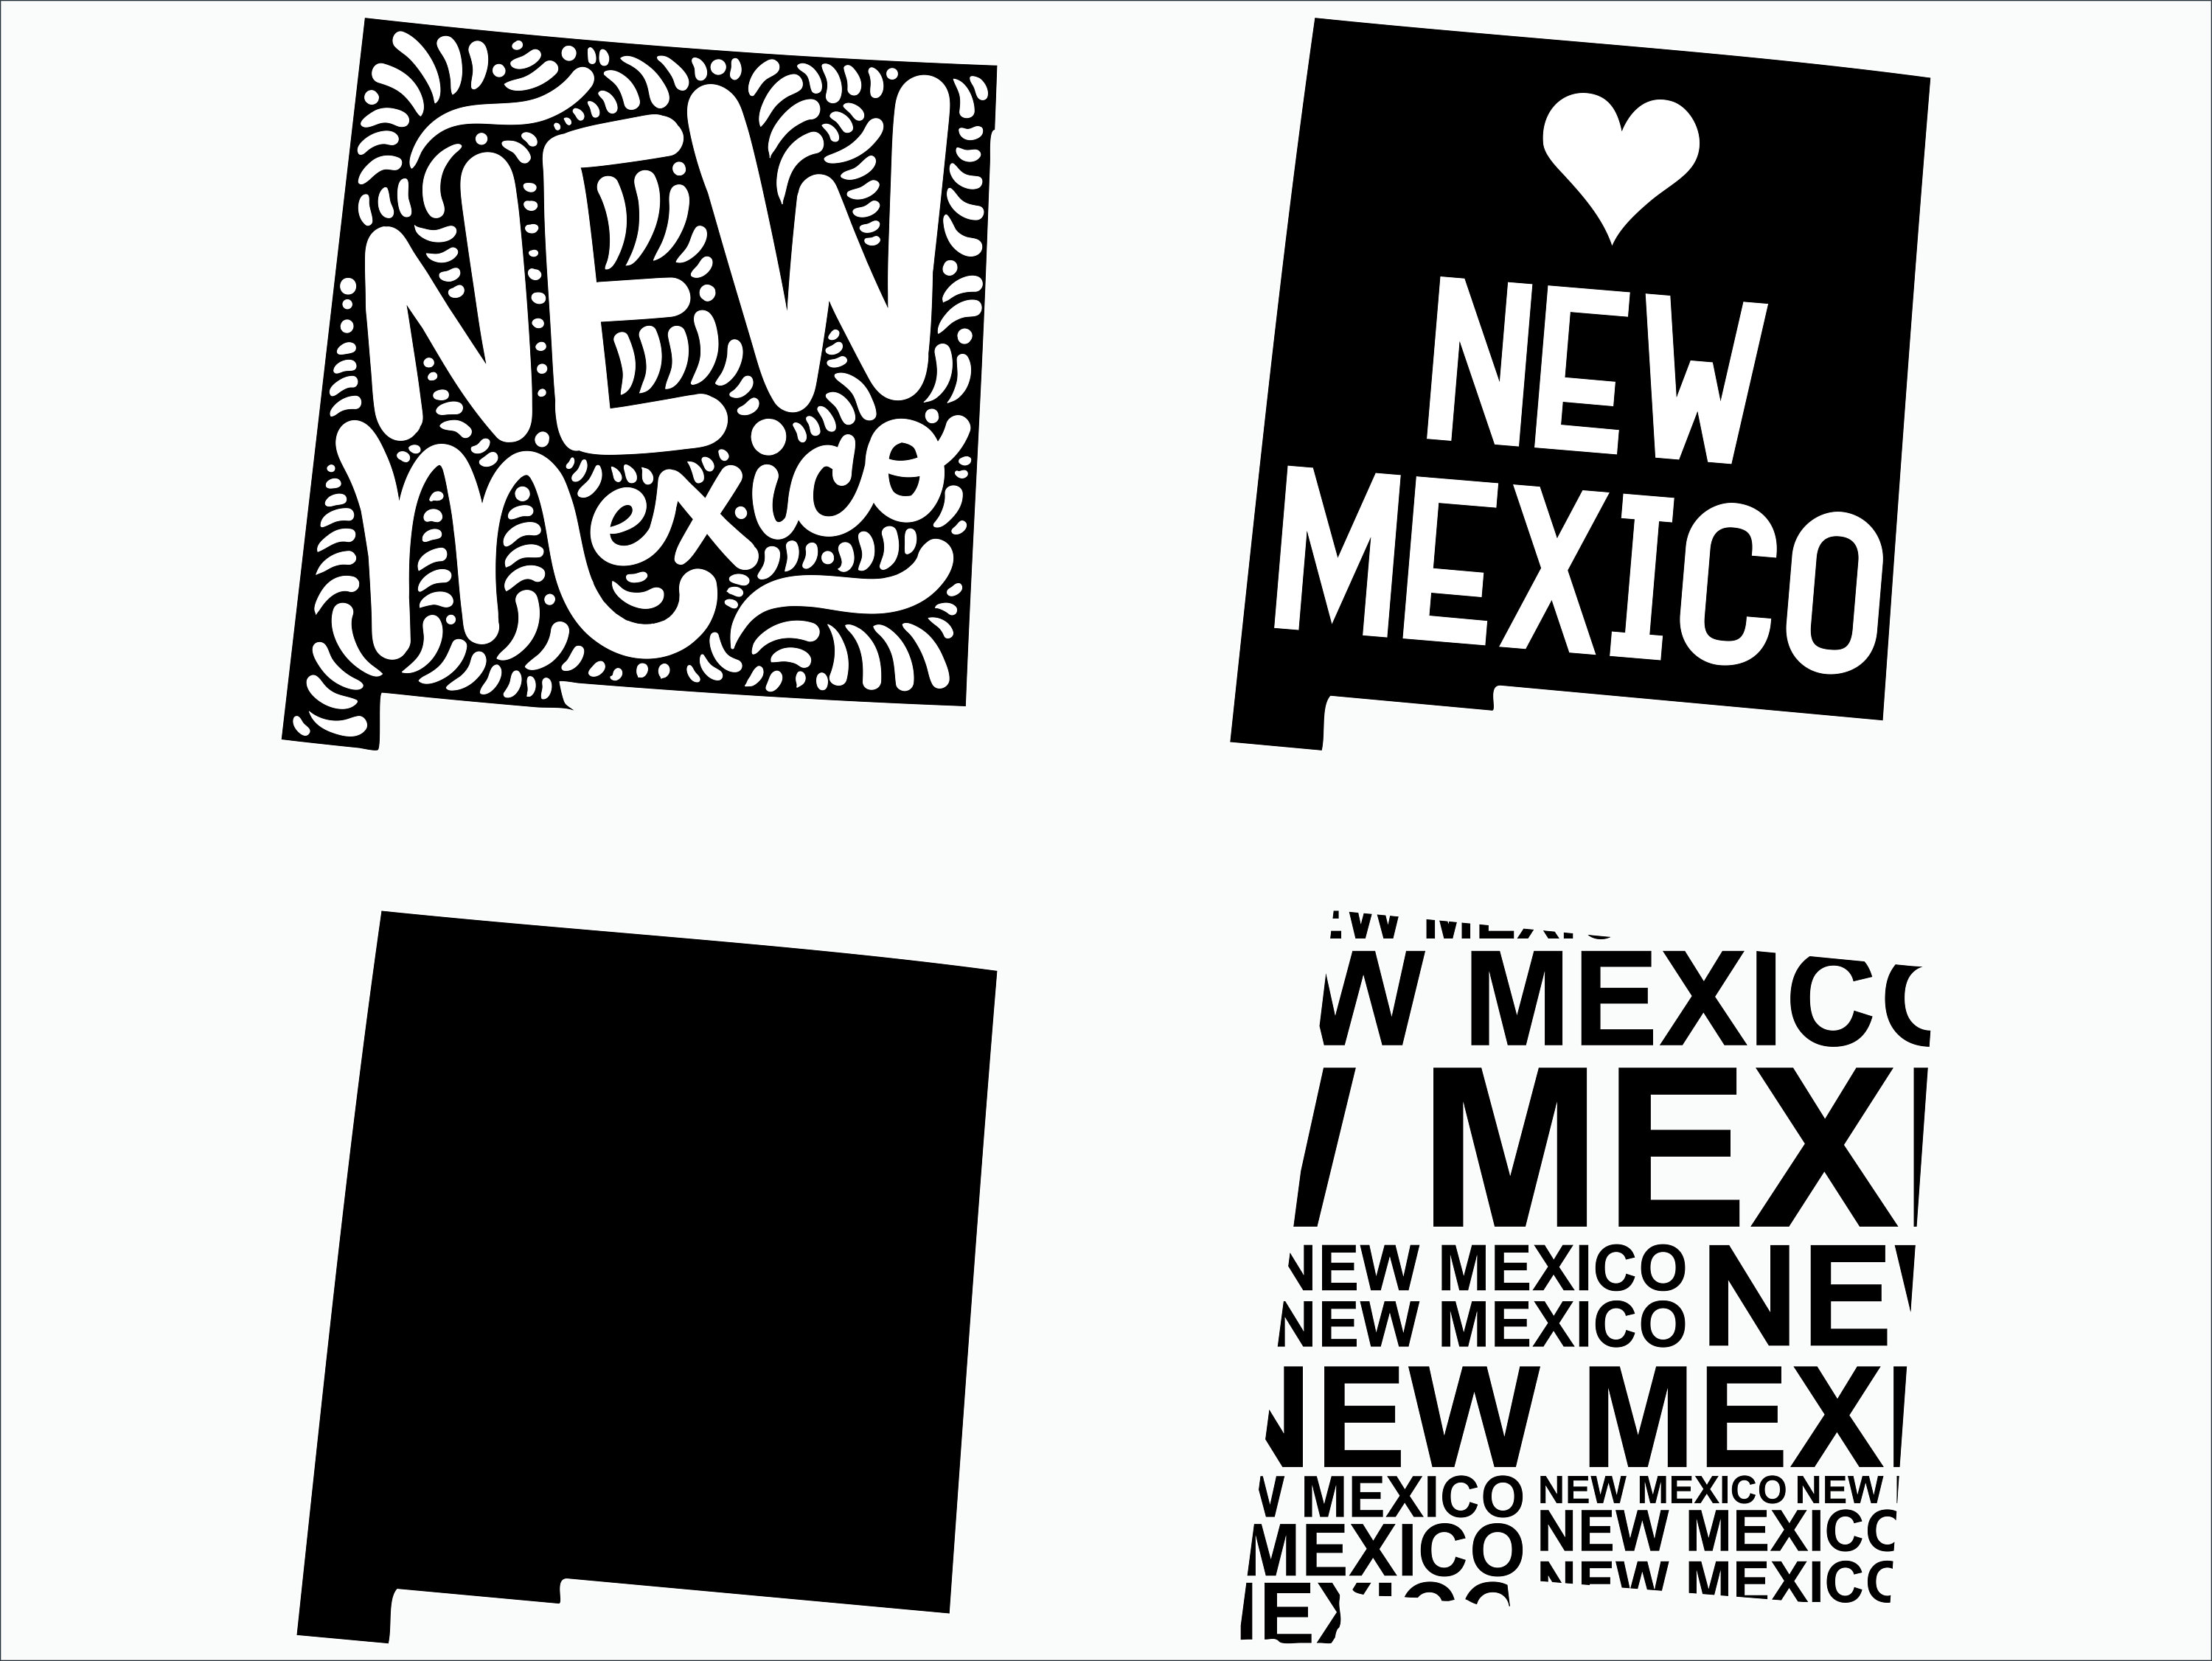 New Mexico SVG/ New Mexico clipart/ New Mexico state svg/ Cricut /  printable / silhouette / vinyl decal / vector files for cutting machines.